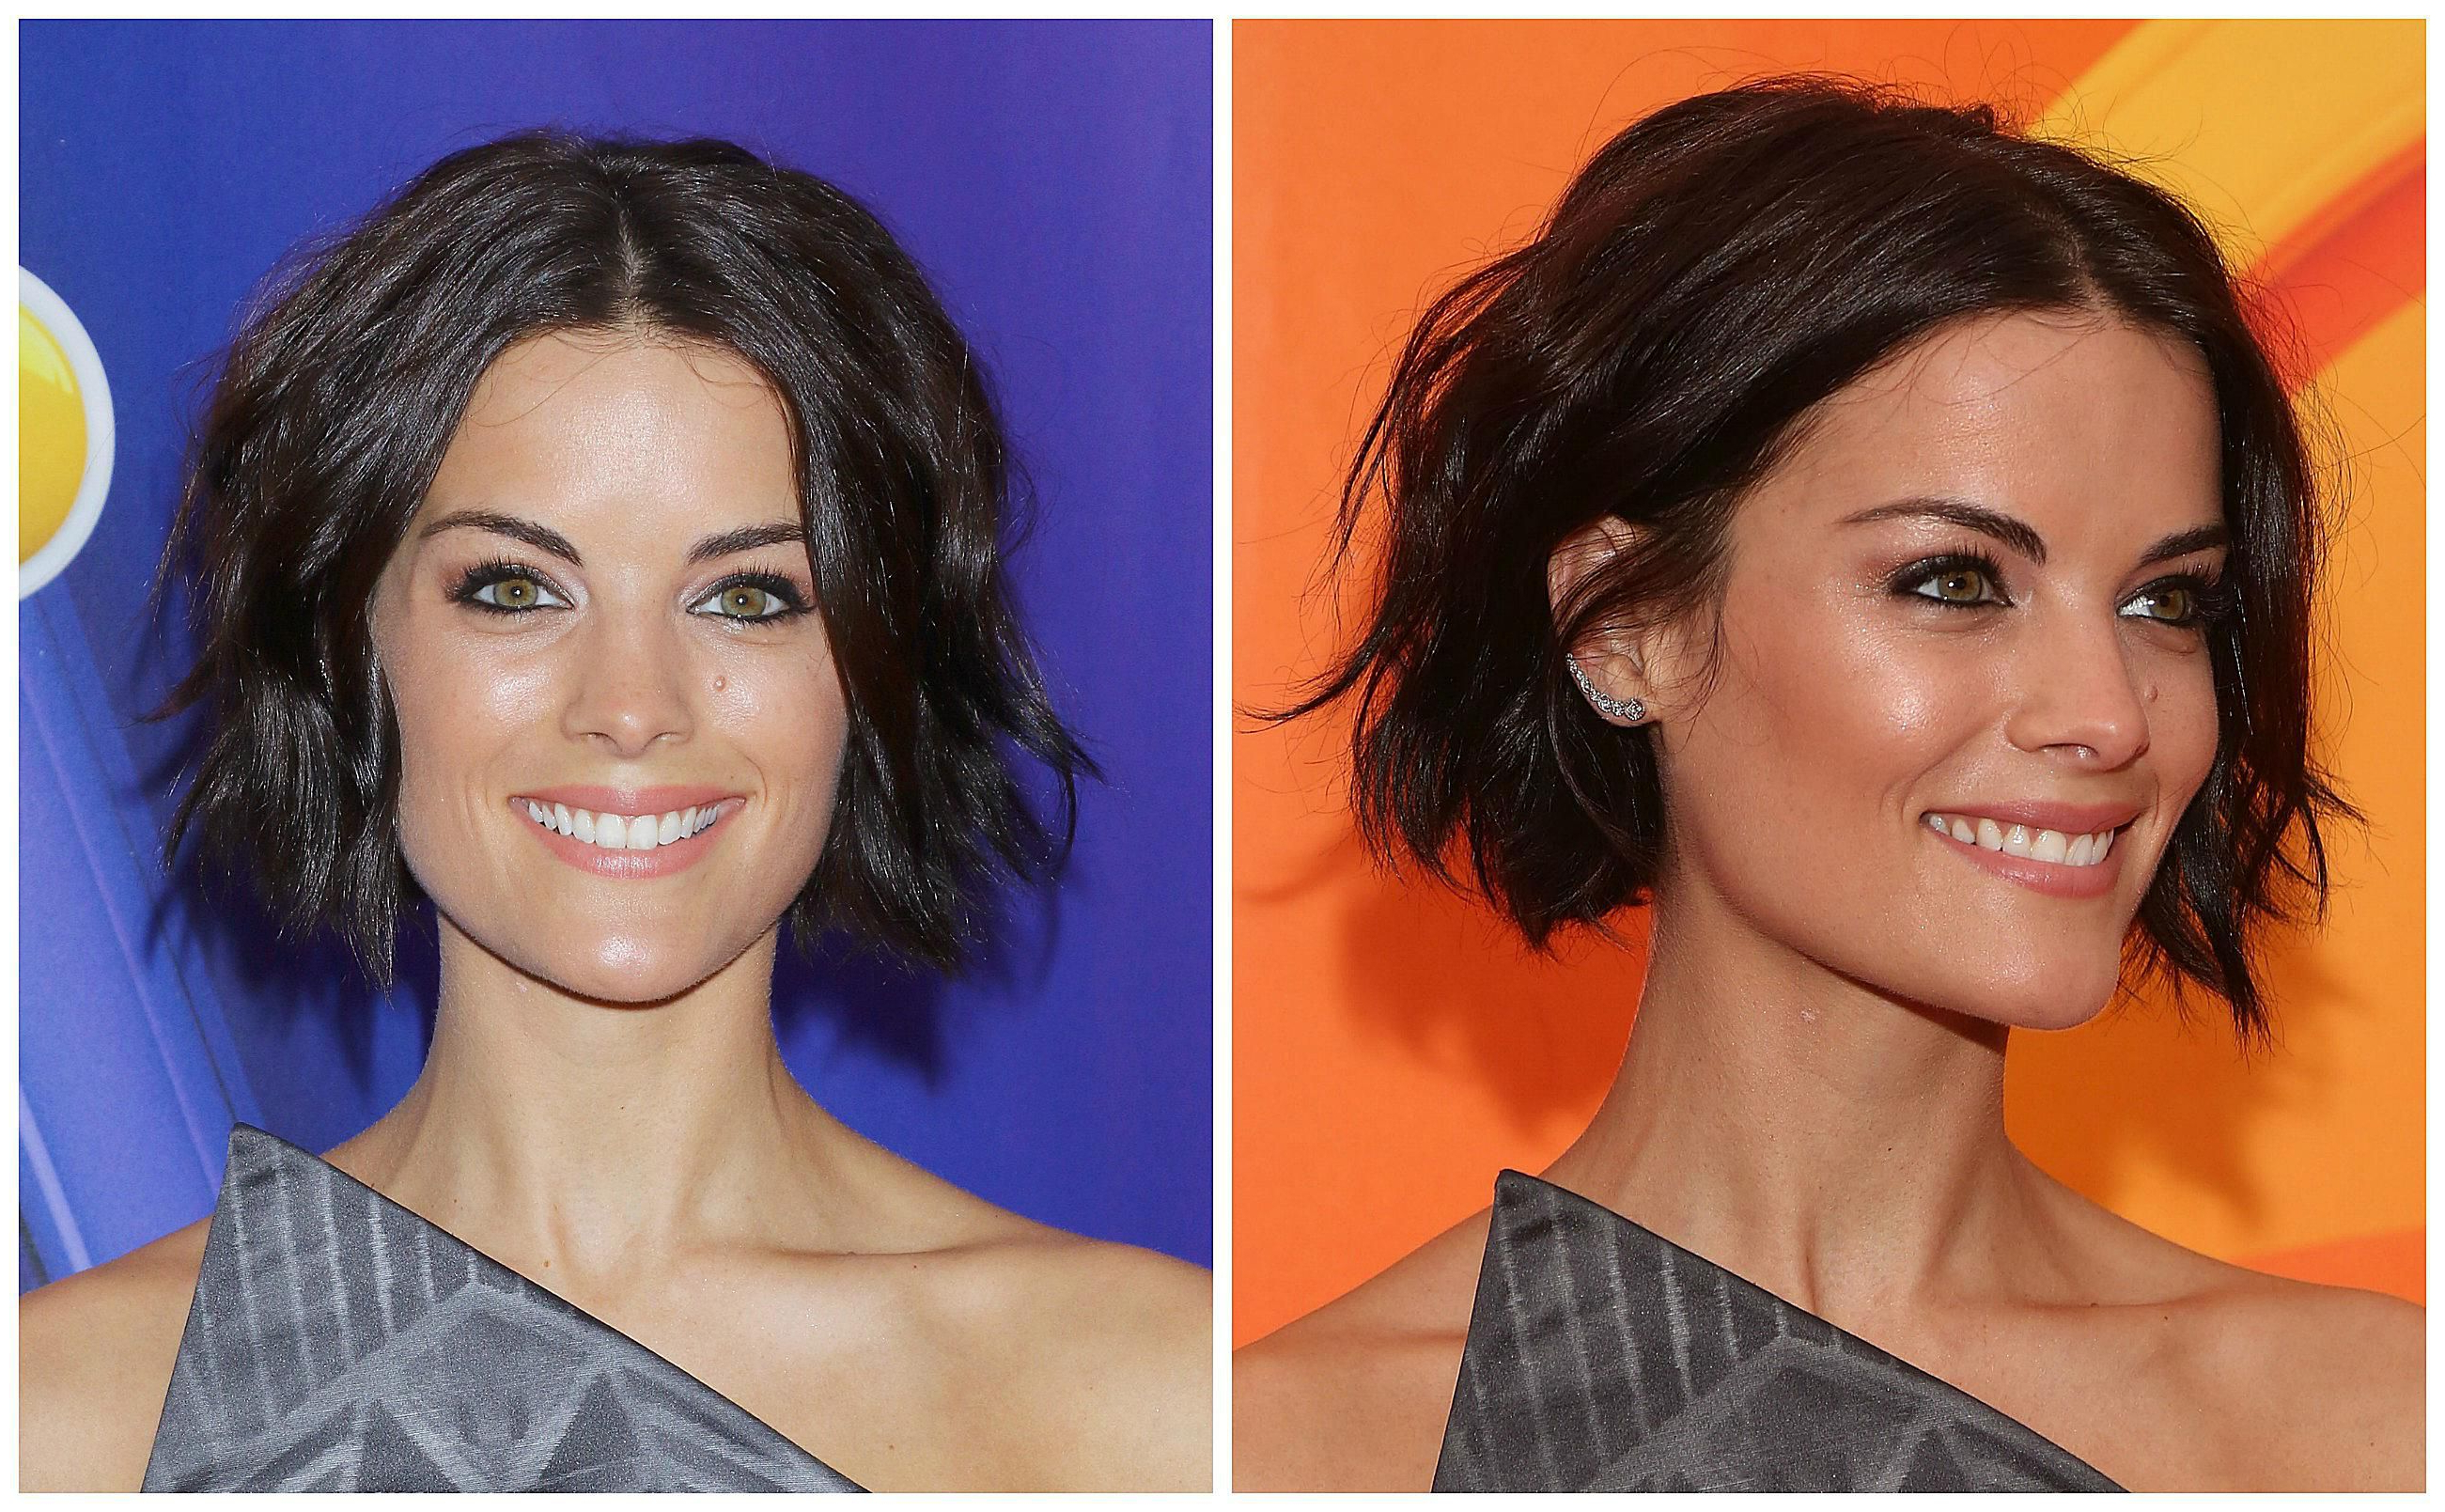 How To Tell If You'd Look Good In Short Hair Pertaining To Short Hairstyles For Petite Faces (View 15 of 25)